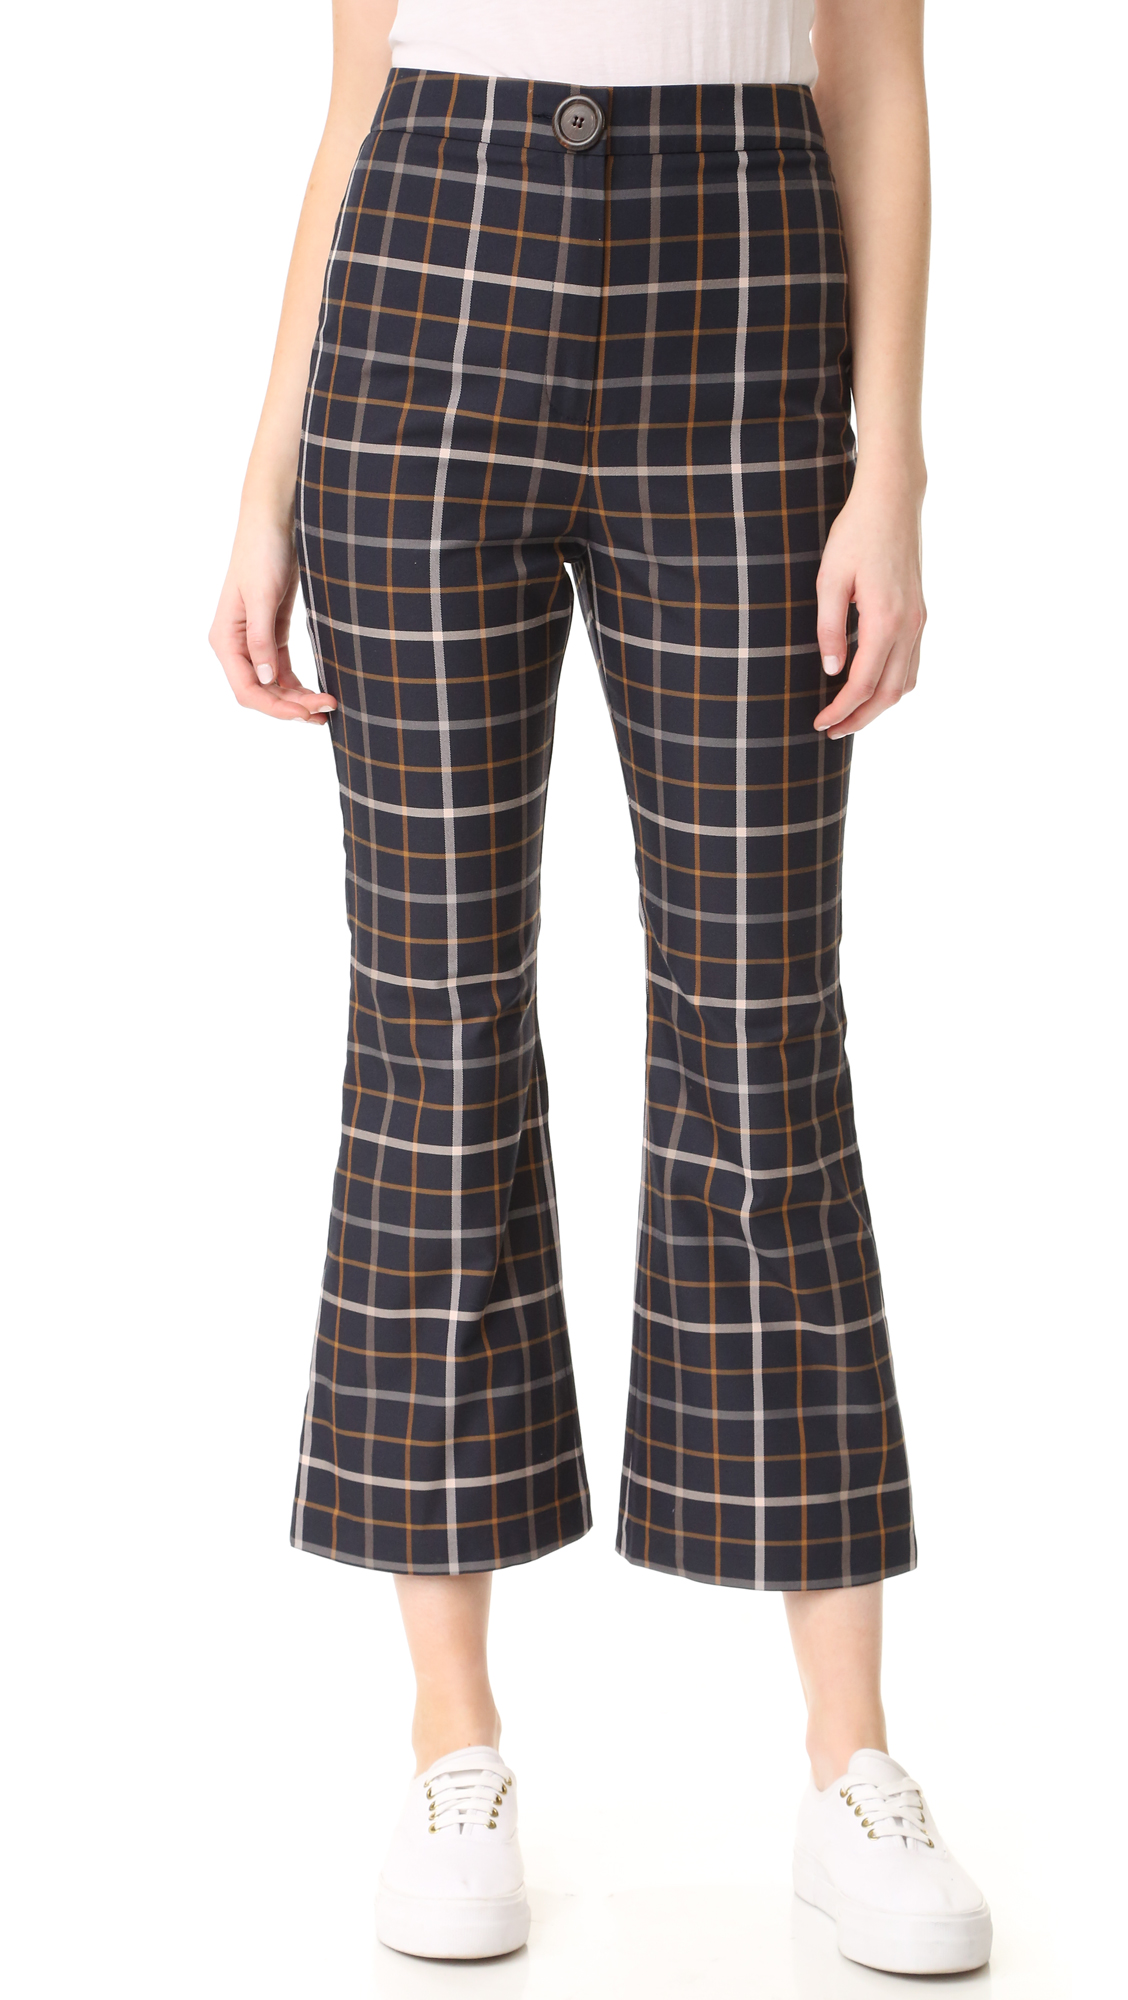 Clean plaid lends a graphic touch to these A.W.A.K.E. flared trousers. Button closure and zip fly. Fabric: Mid weight weave. 58% cotton/42% polyester. Hand wash or dry clean. Made in United Kingdom. Measurements